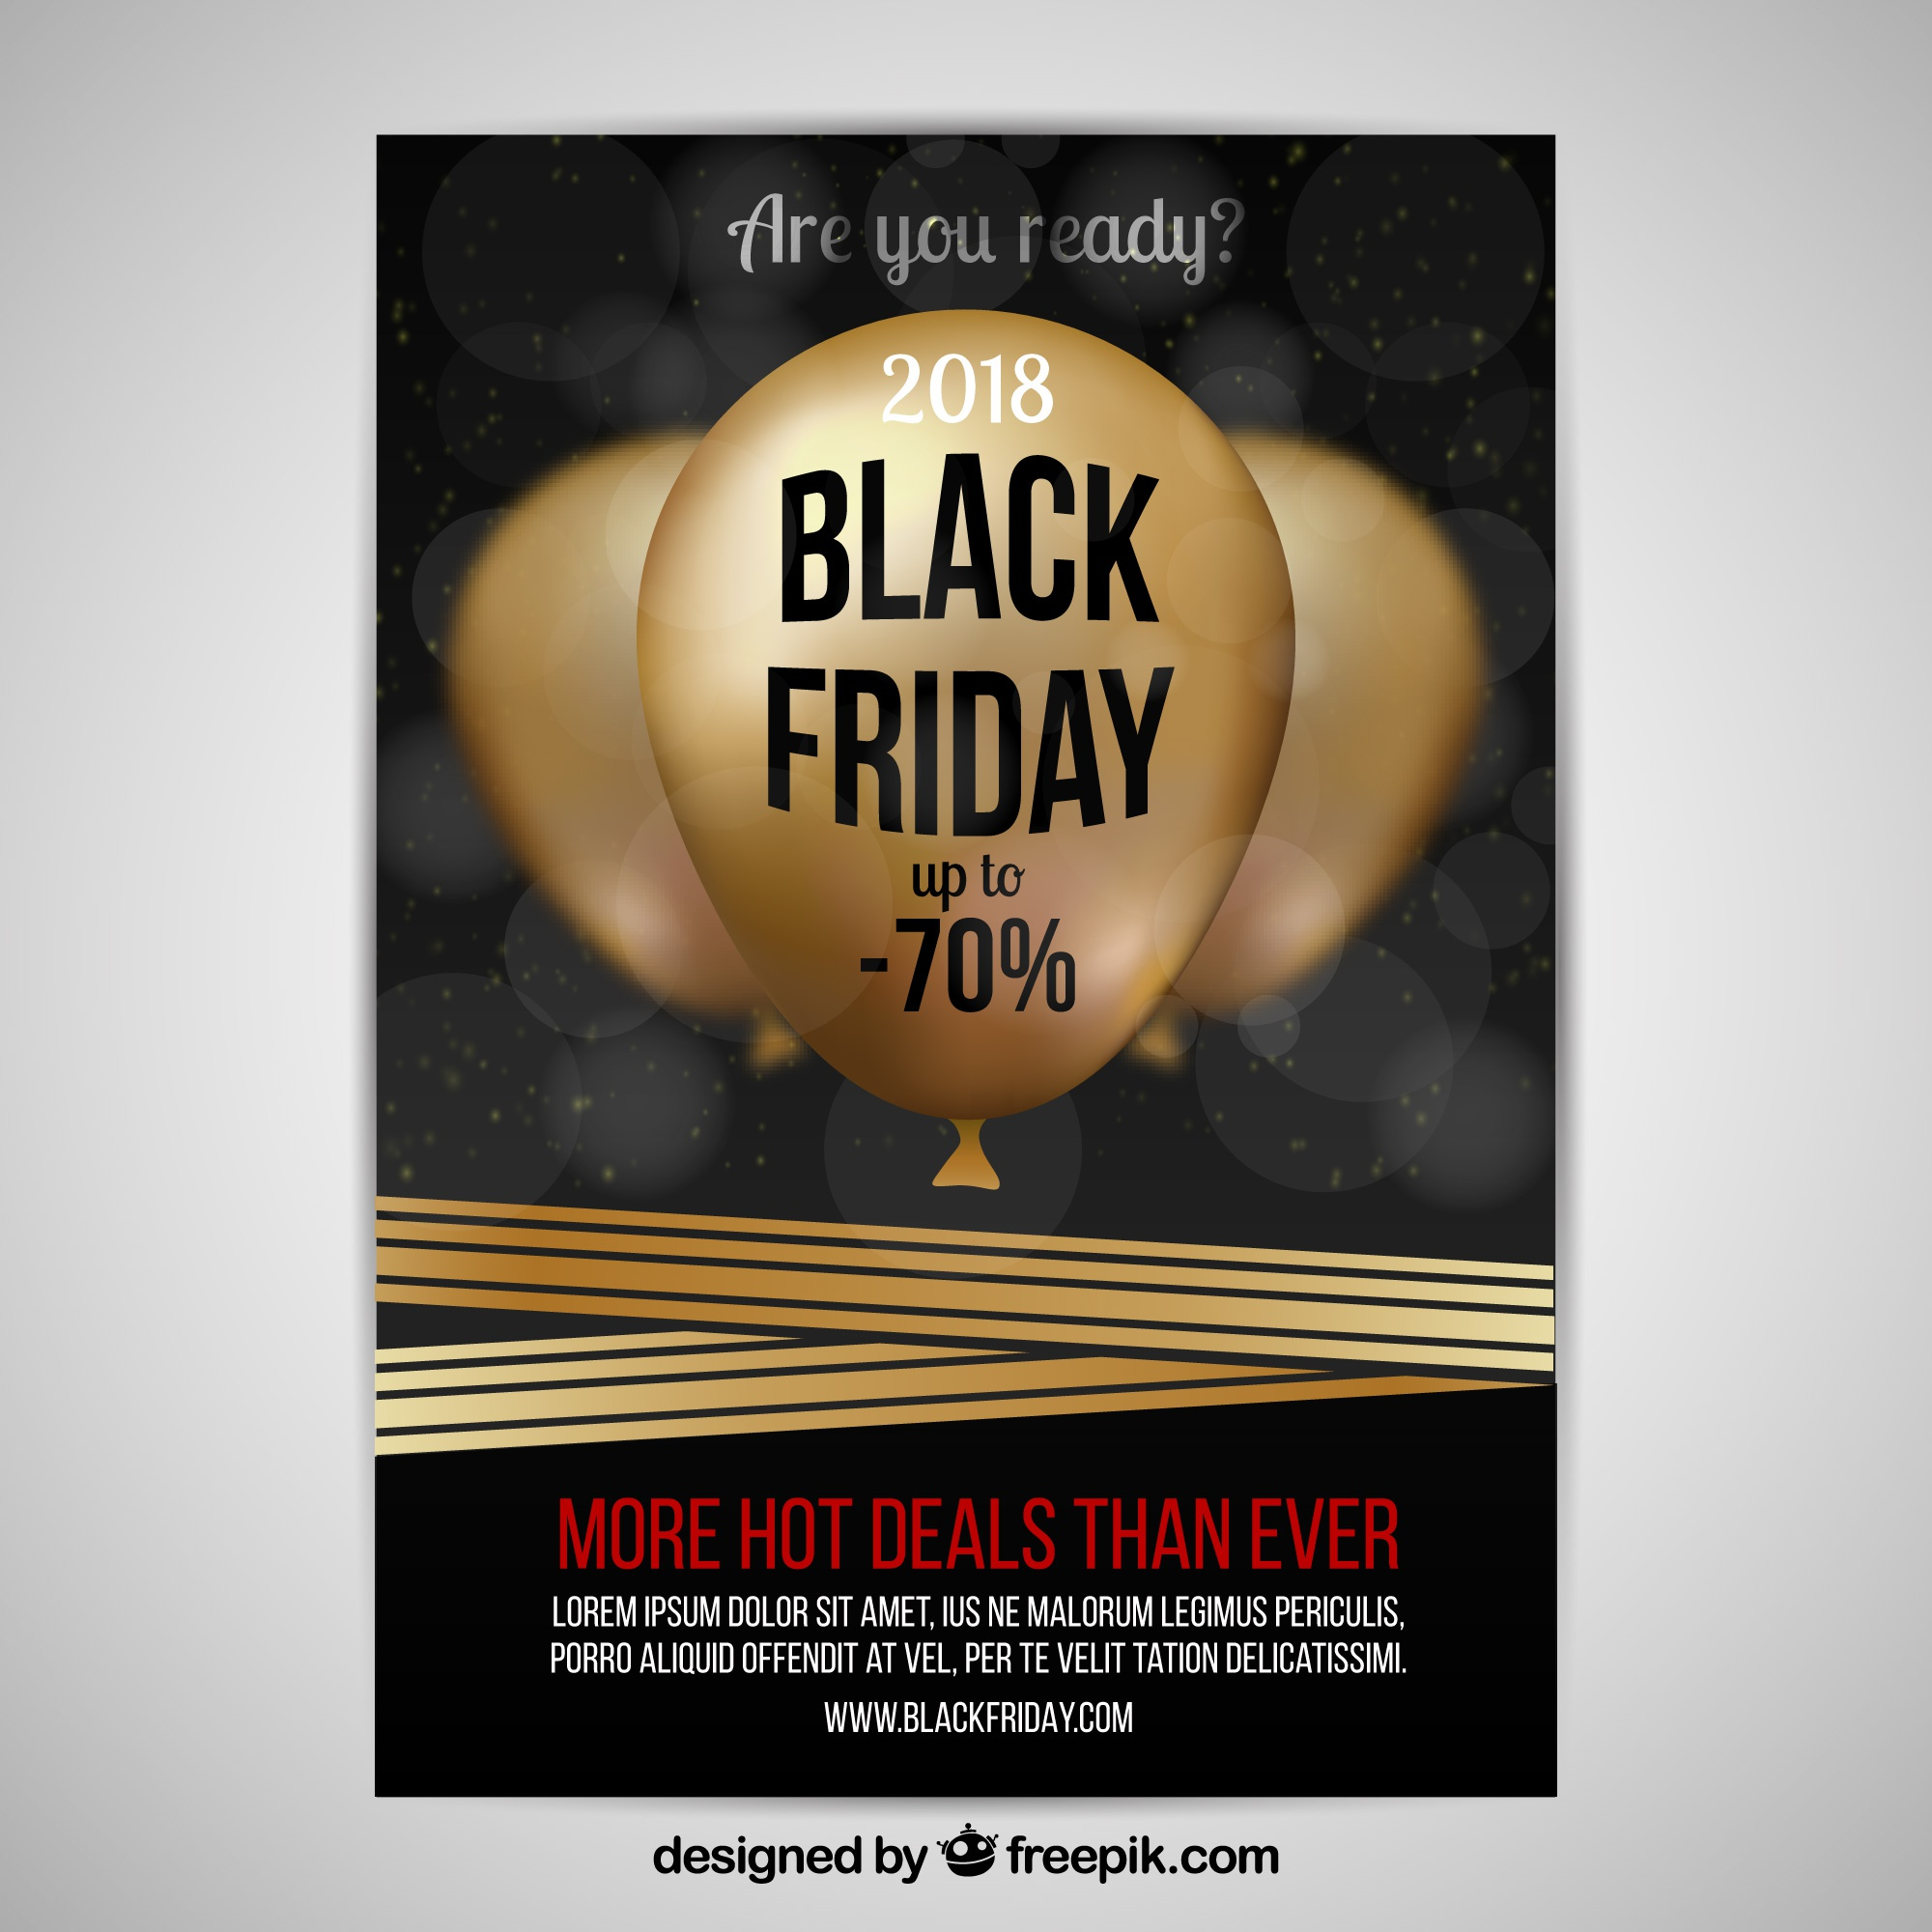 Black Friday Poster mit goldenen Luftballons